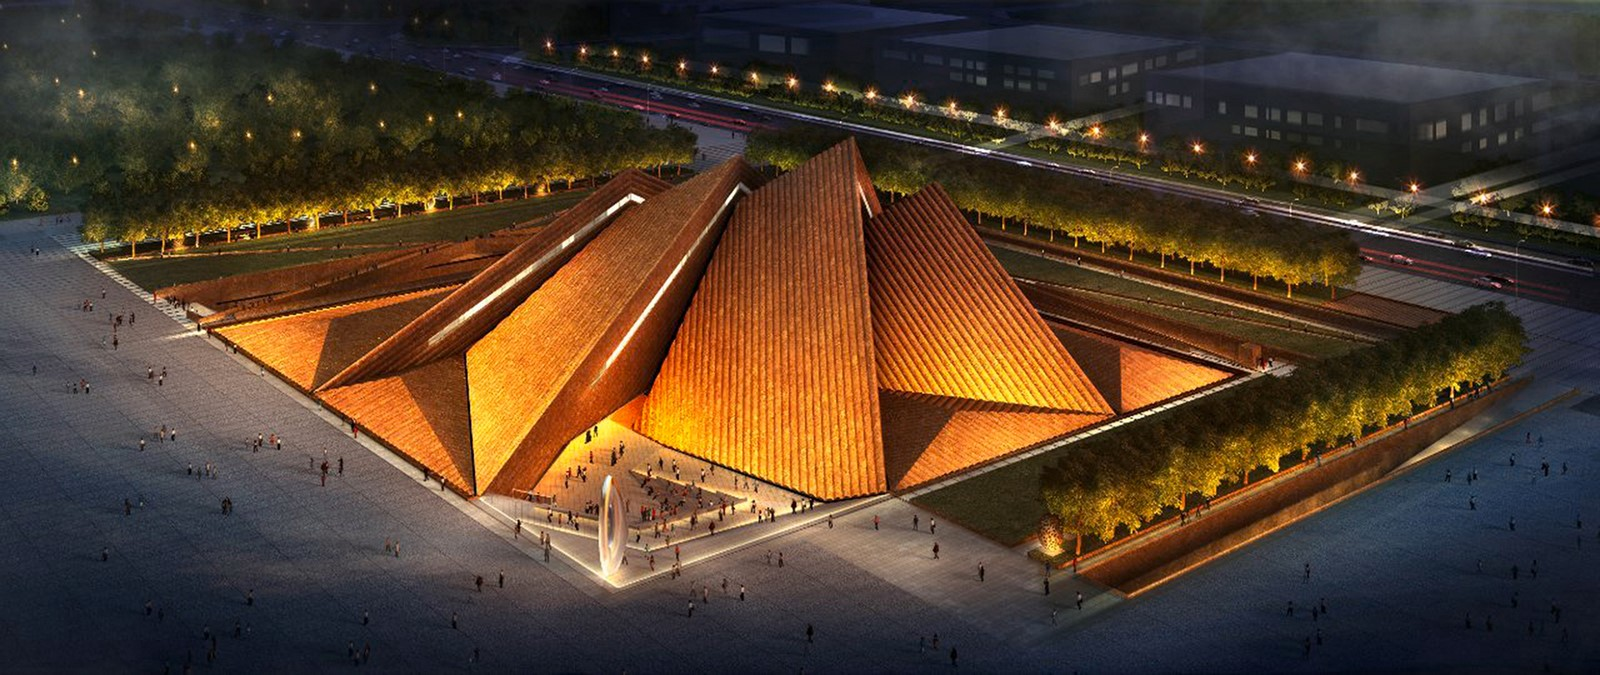 DATONG ART MUSEUM - Sheet1